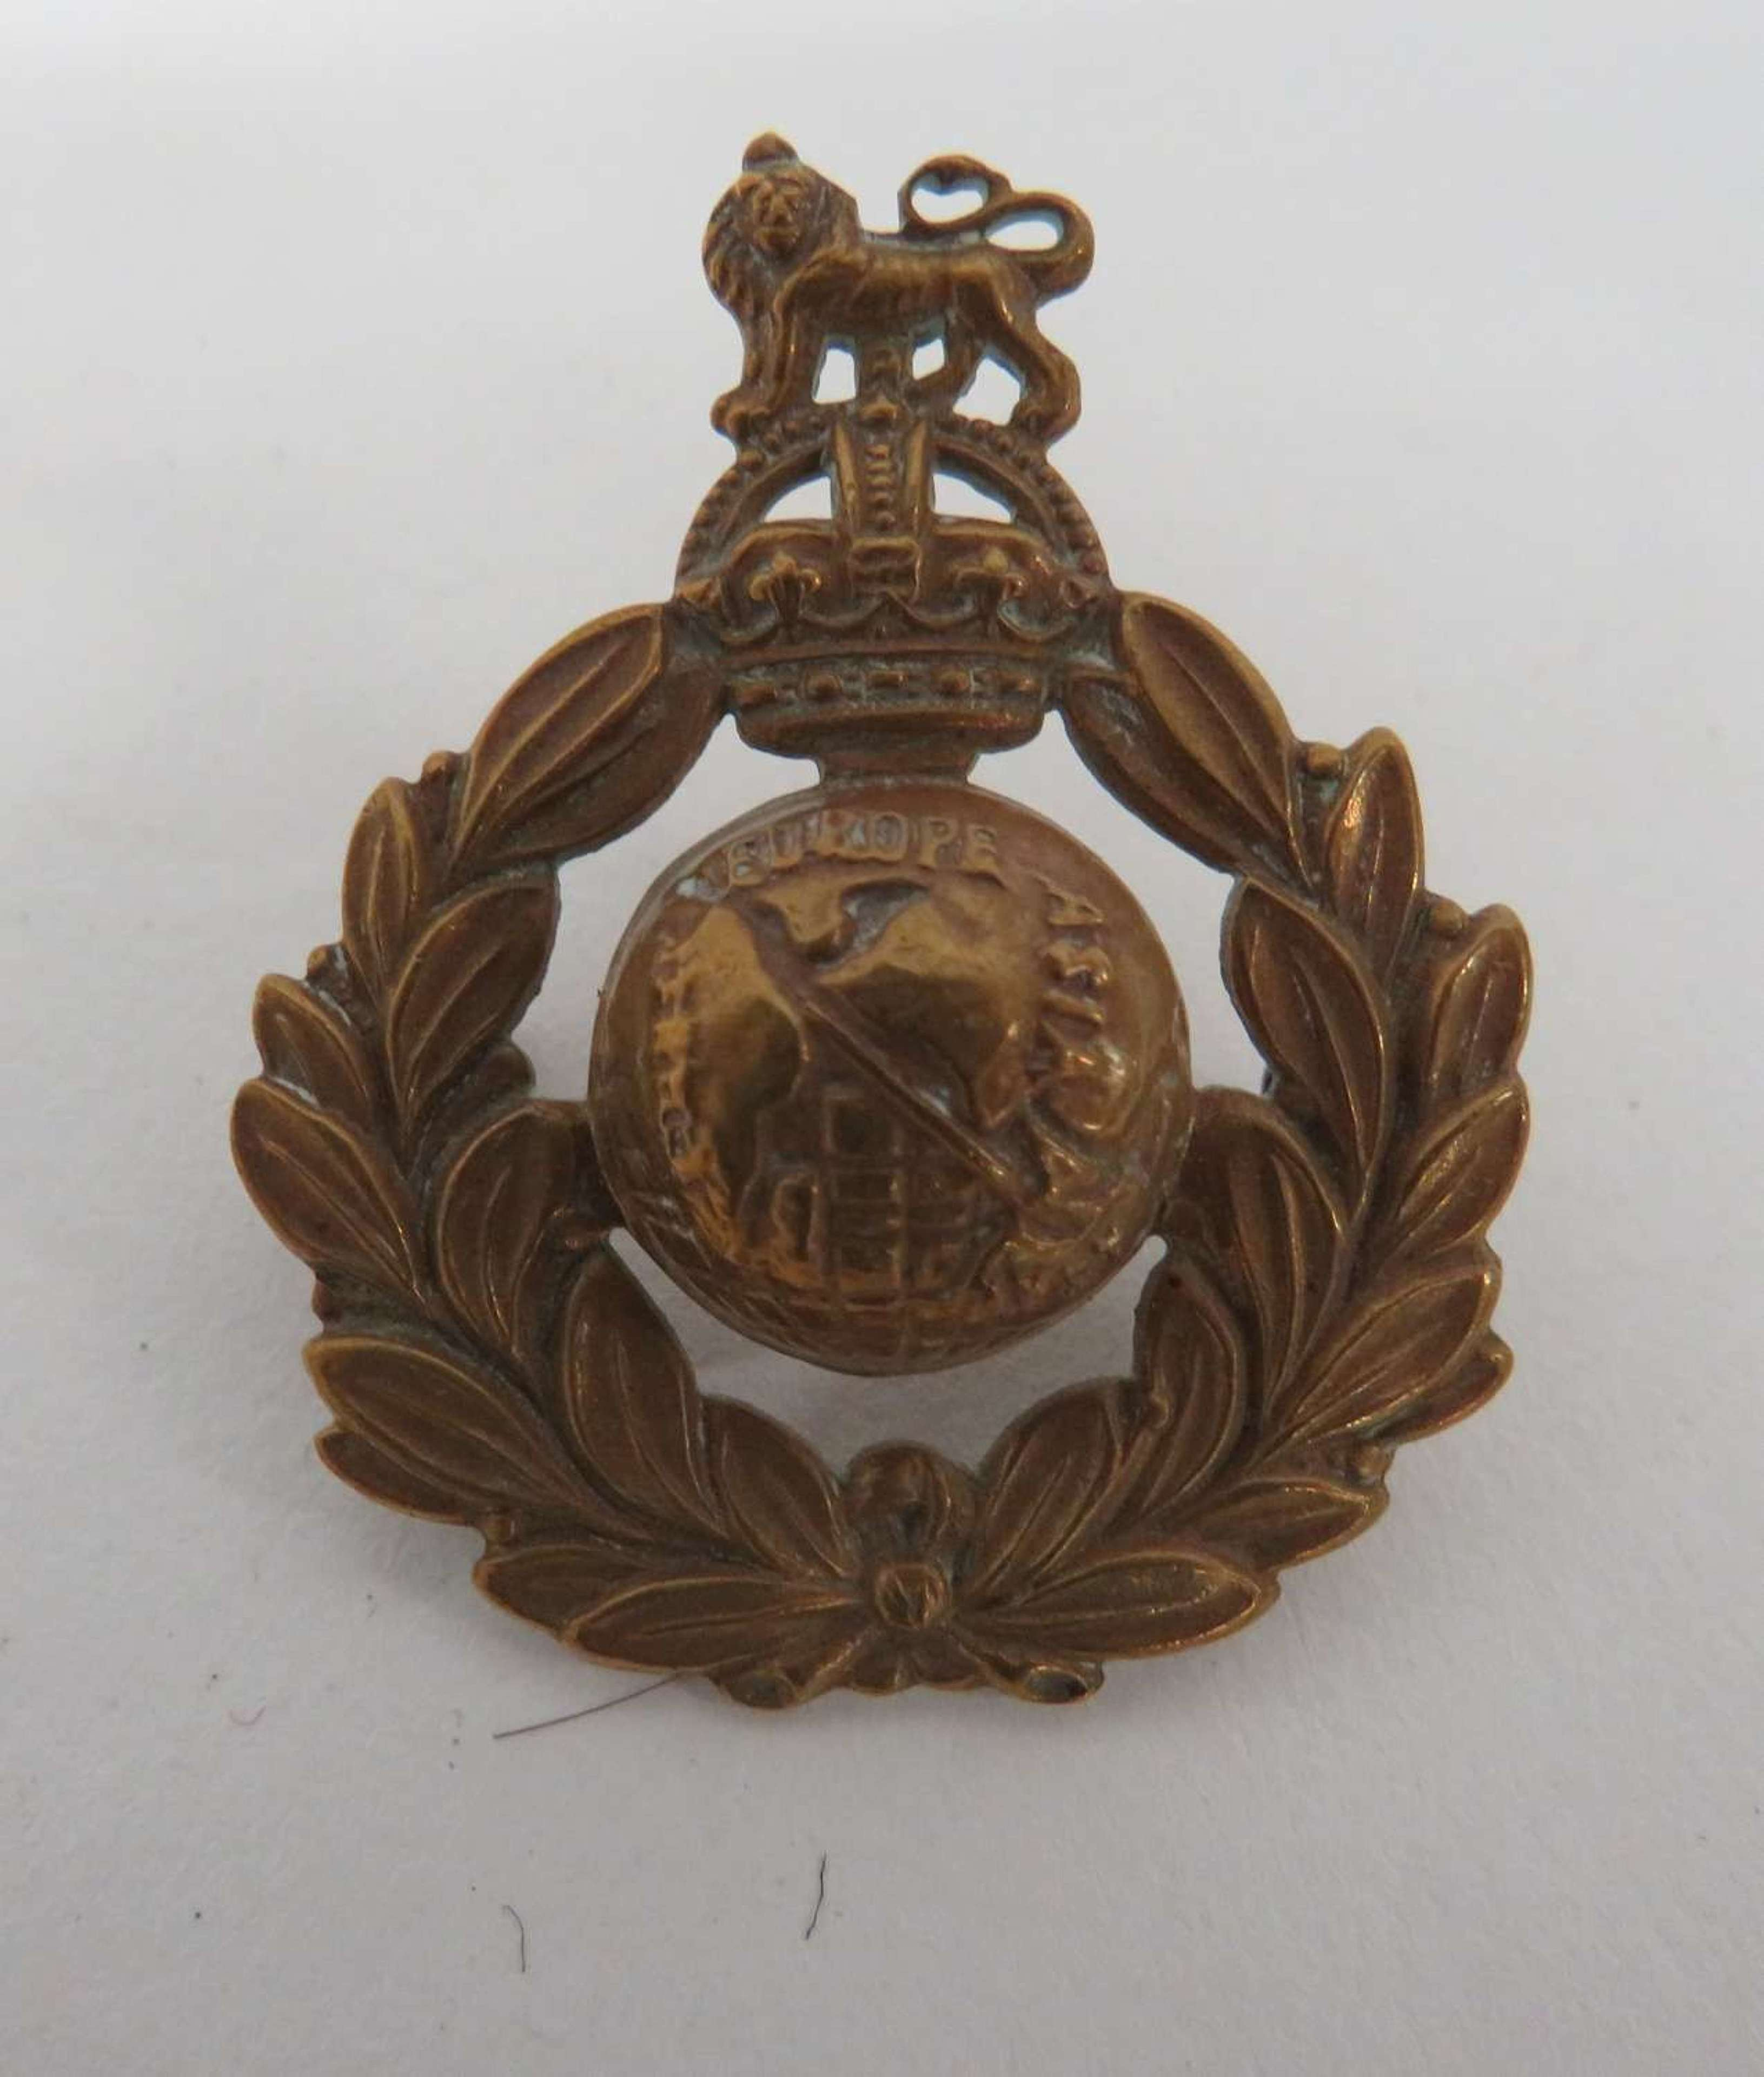 Pre 1953 Royal Marines Beret Badge